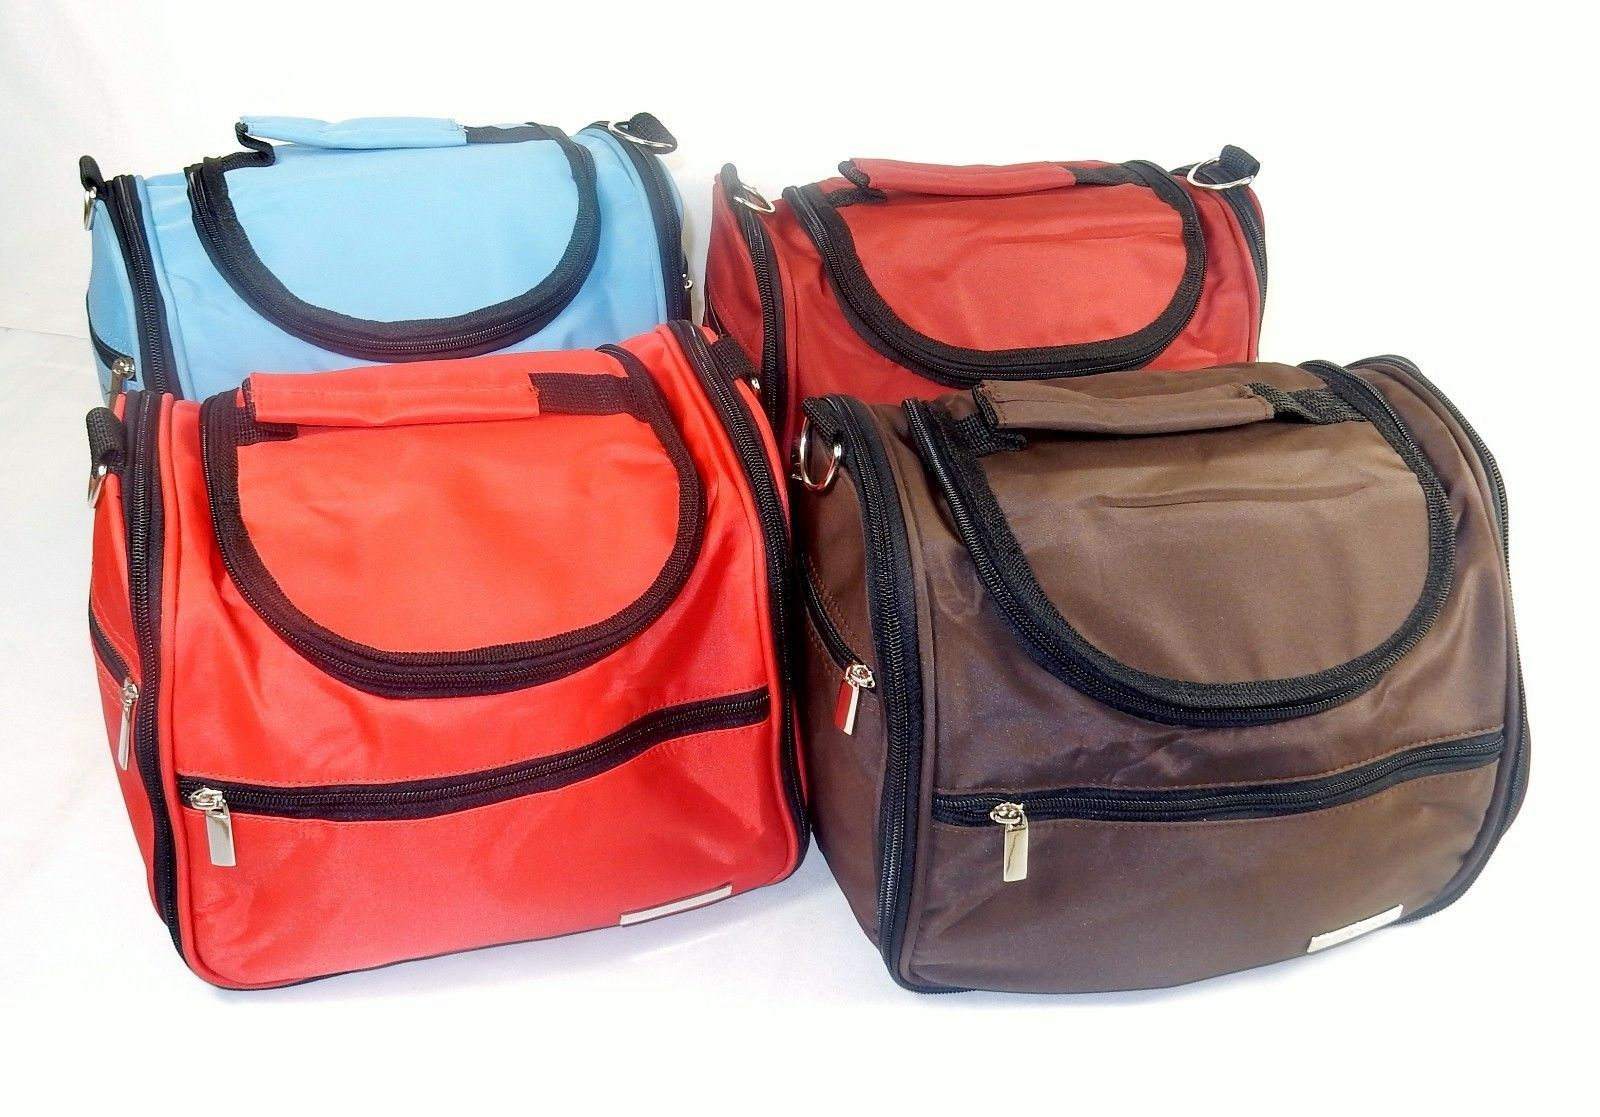 Primary image for Samsonite Take It All Bag, Travel/Beach/Gym, Portable Vanity, Choice of Colors